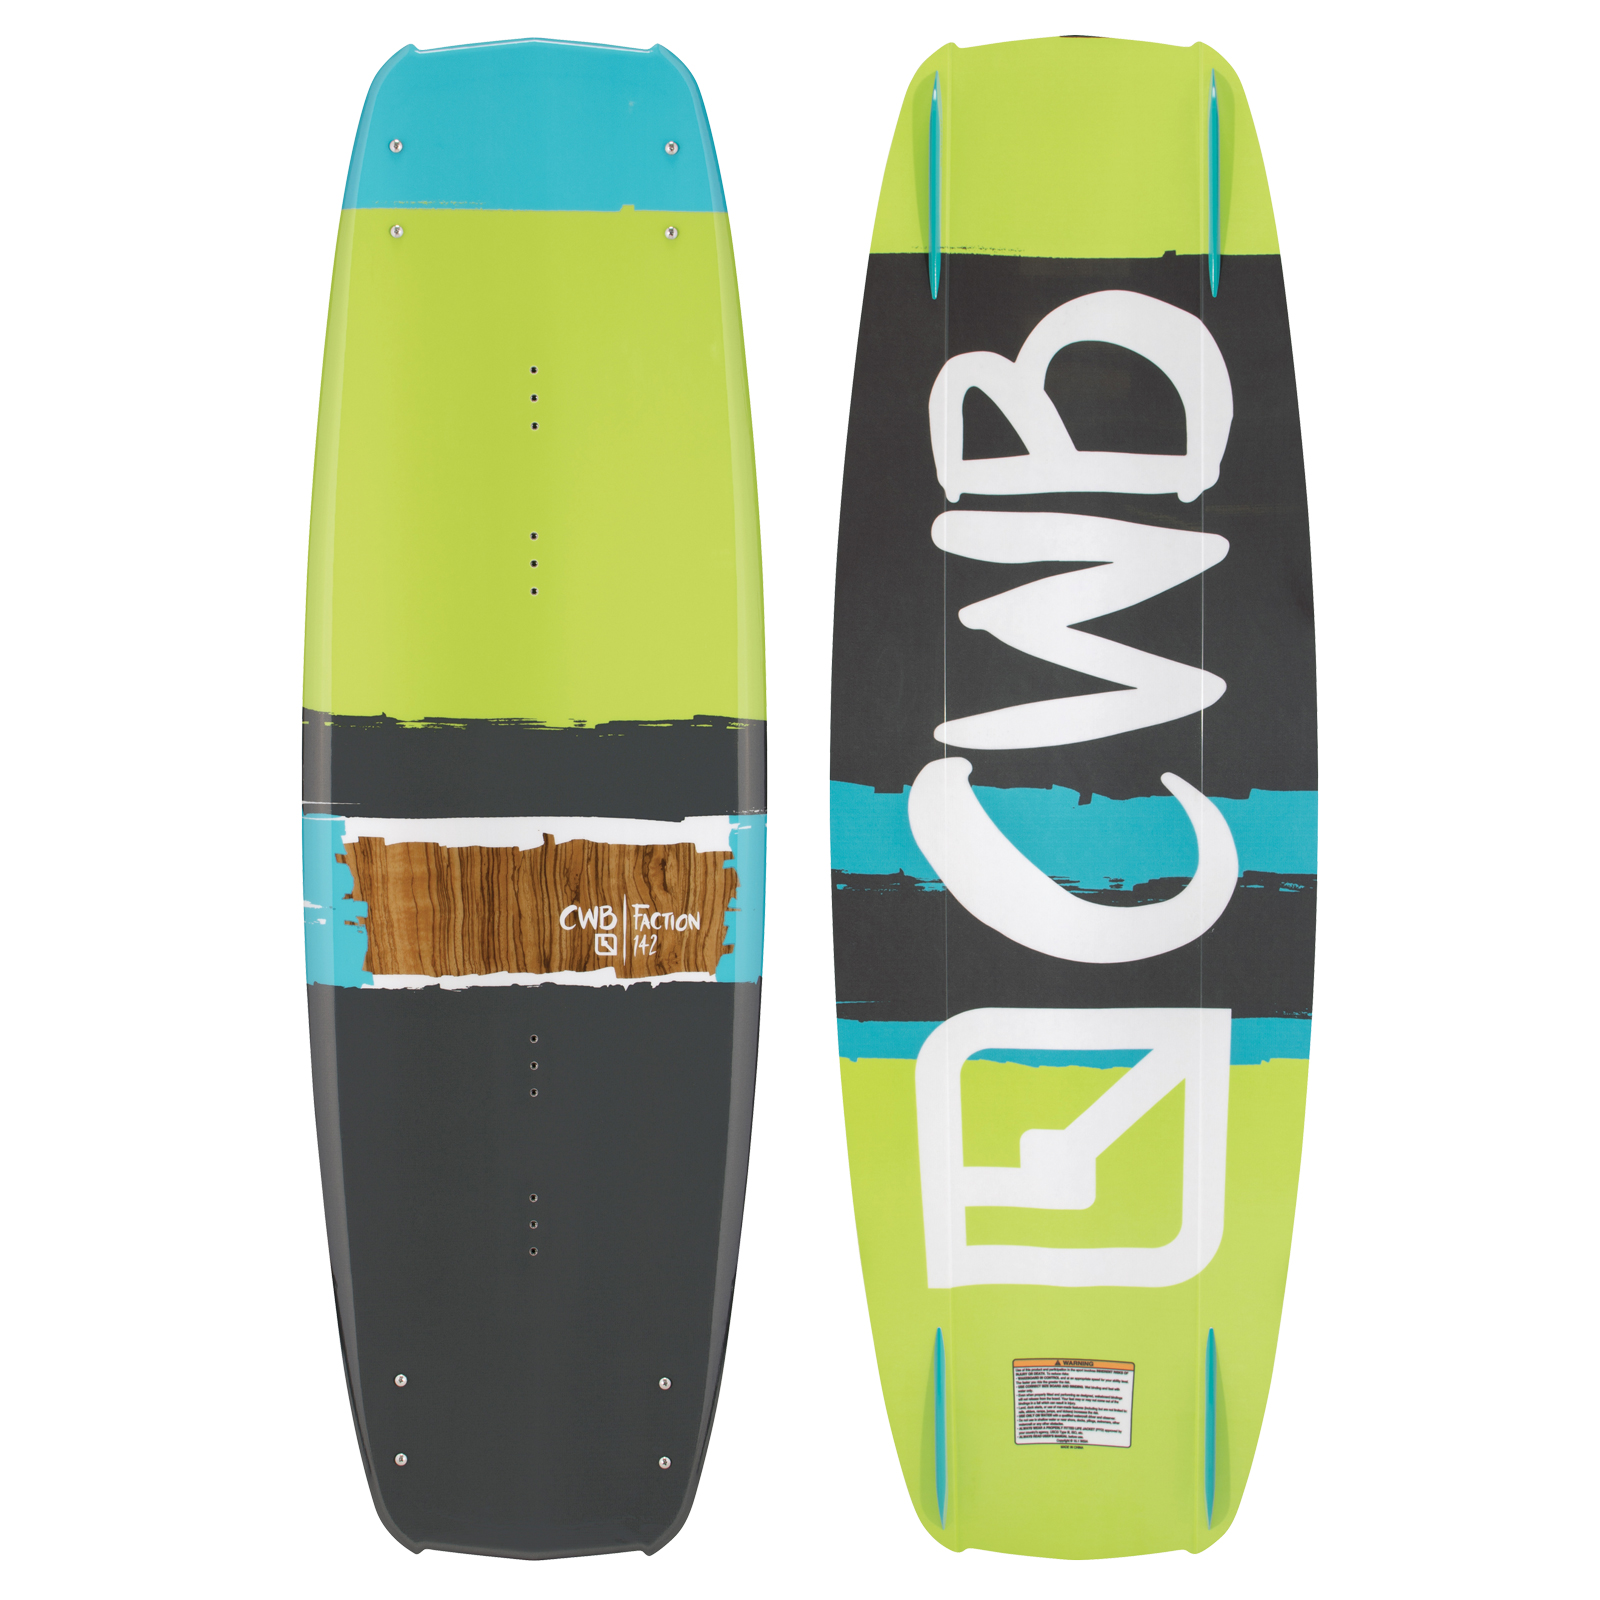 FACTION 142 WAKEBOARD CWB 2017